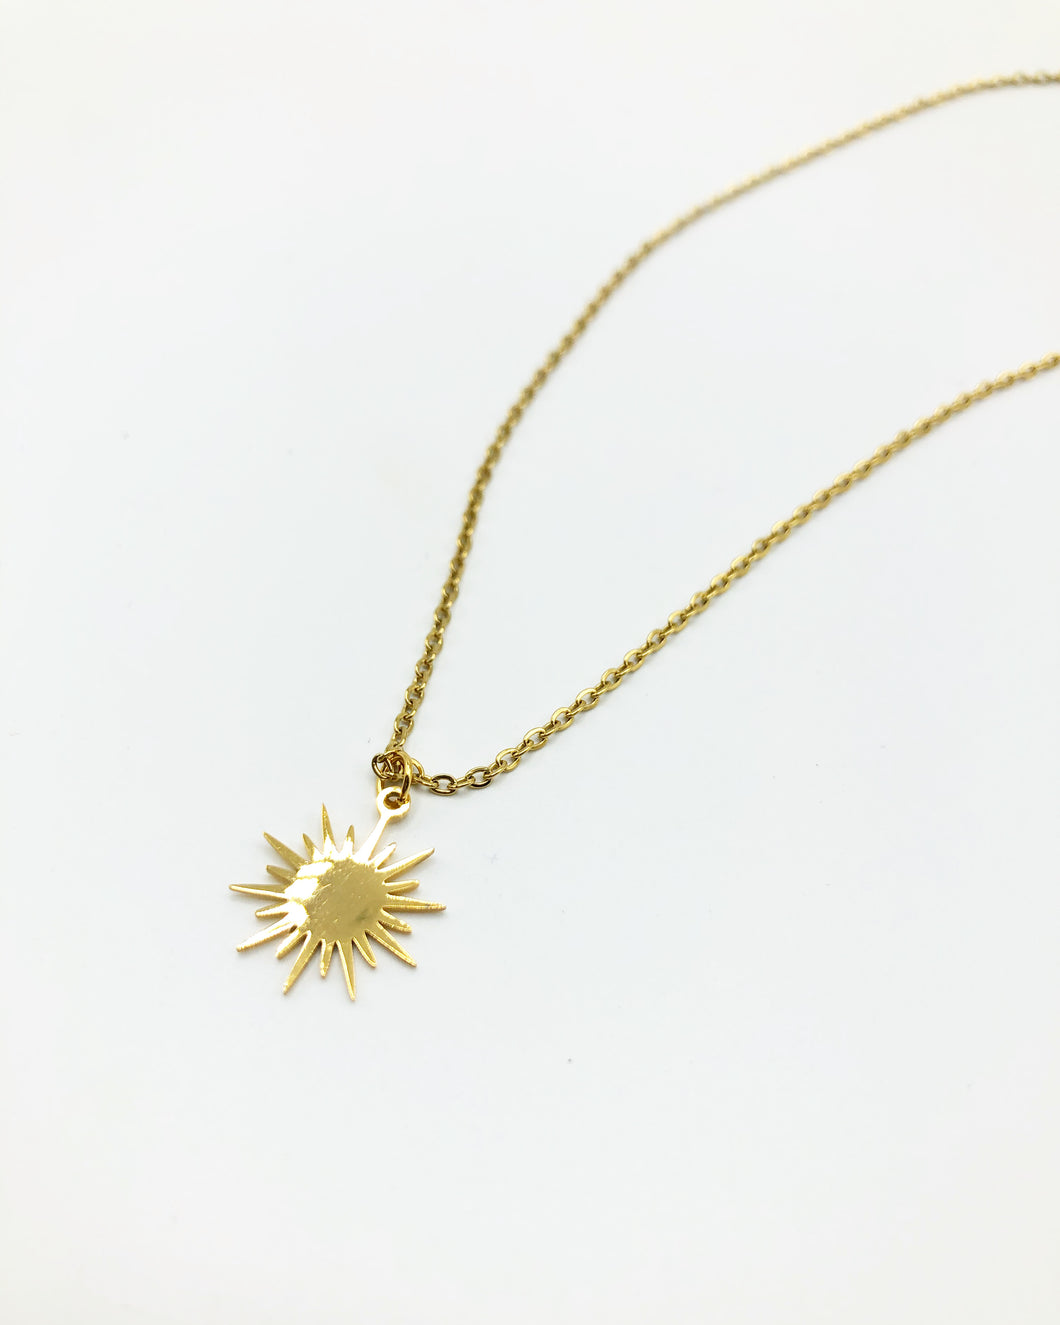 Sunbeam Charm Necklace In Gold